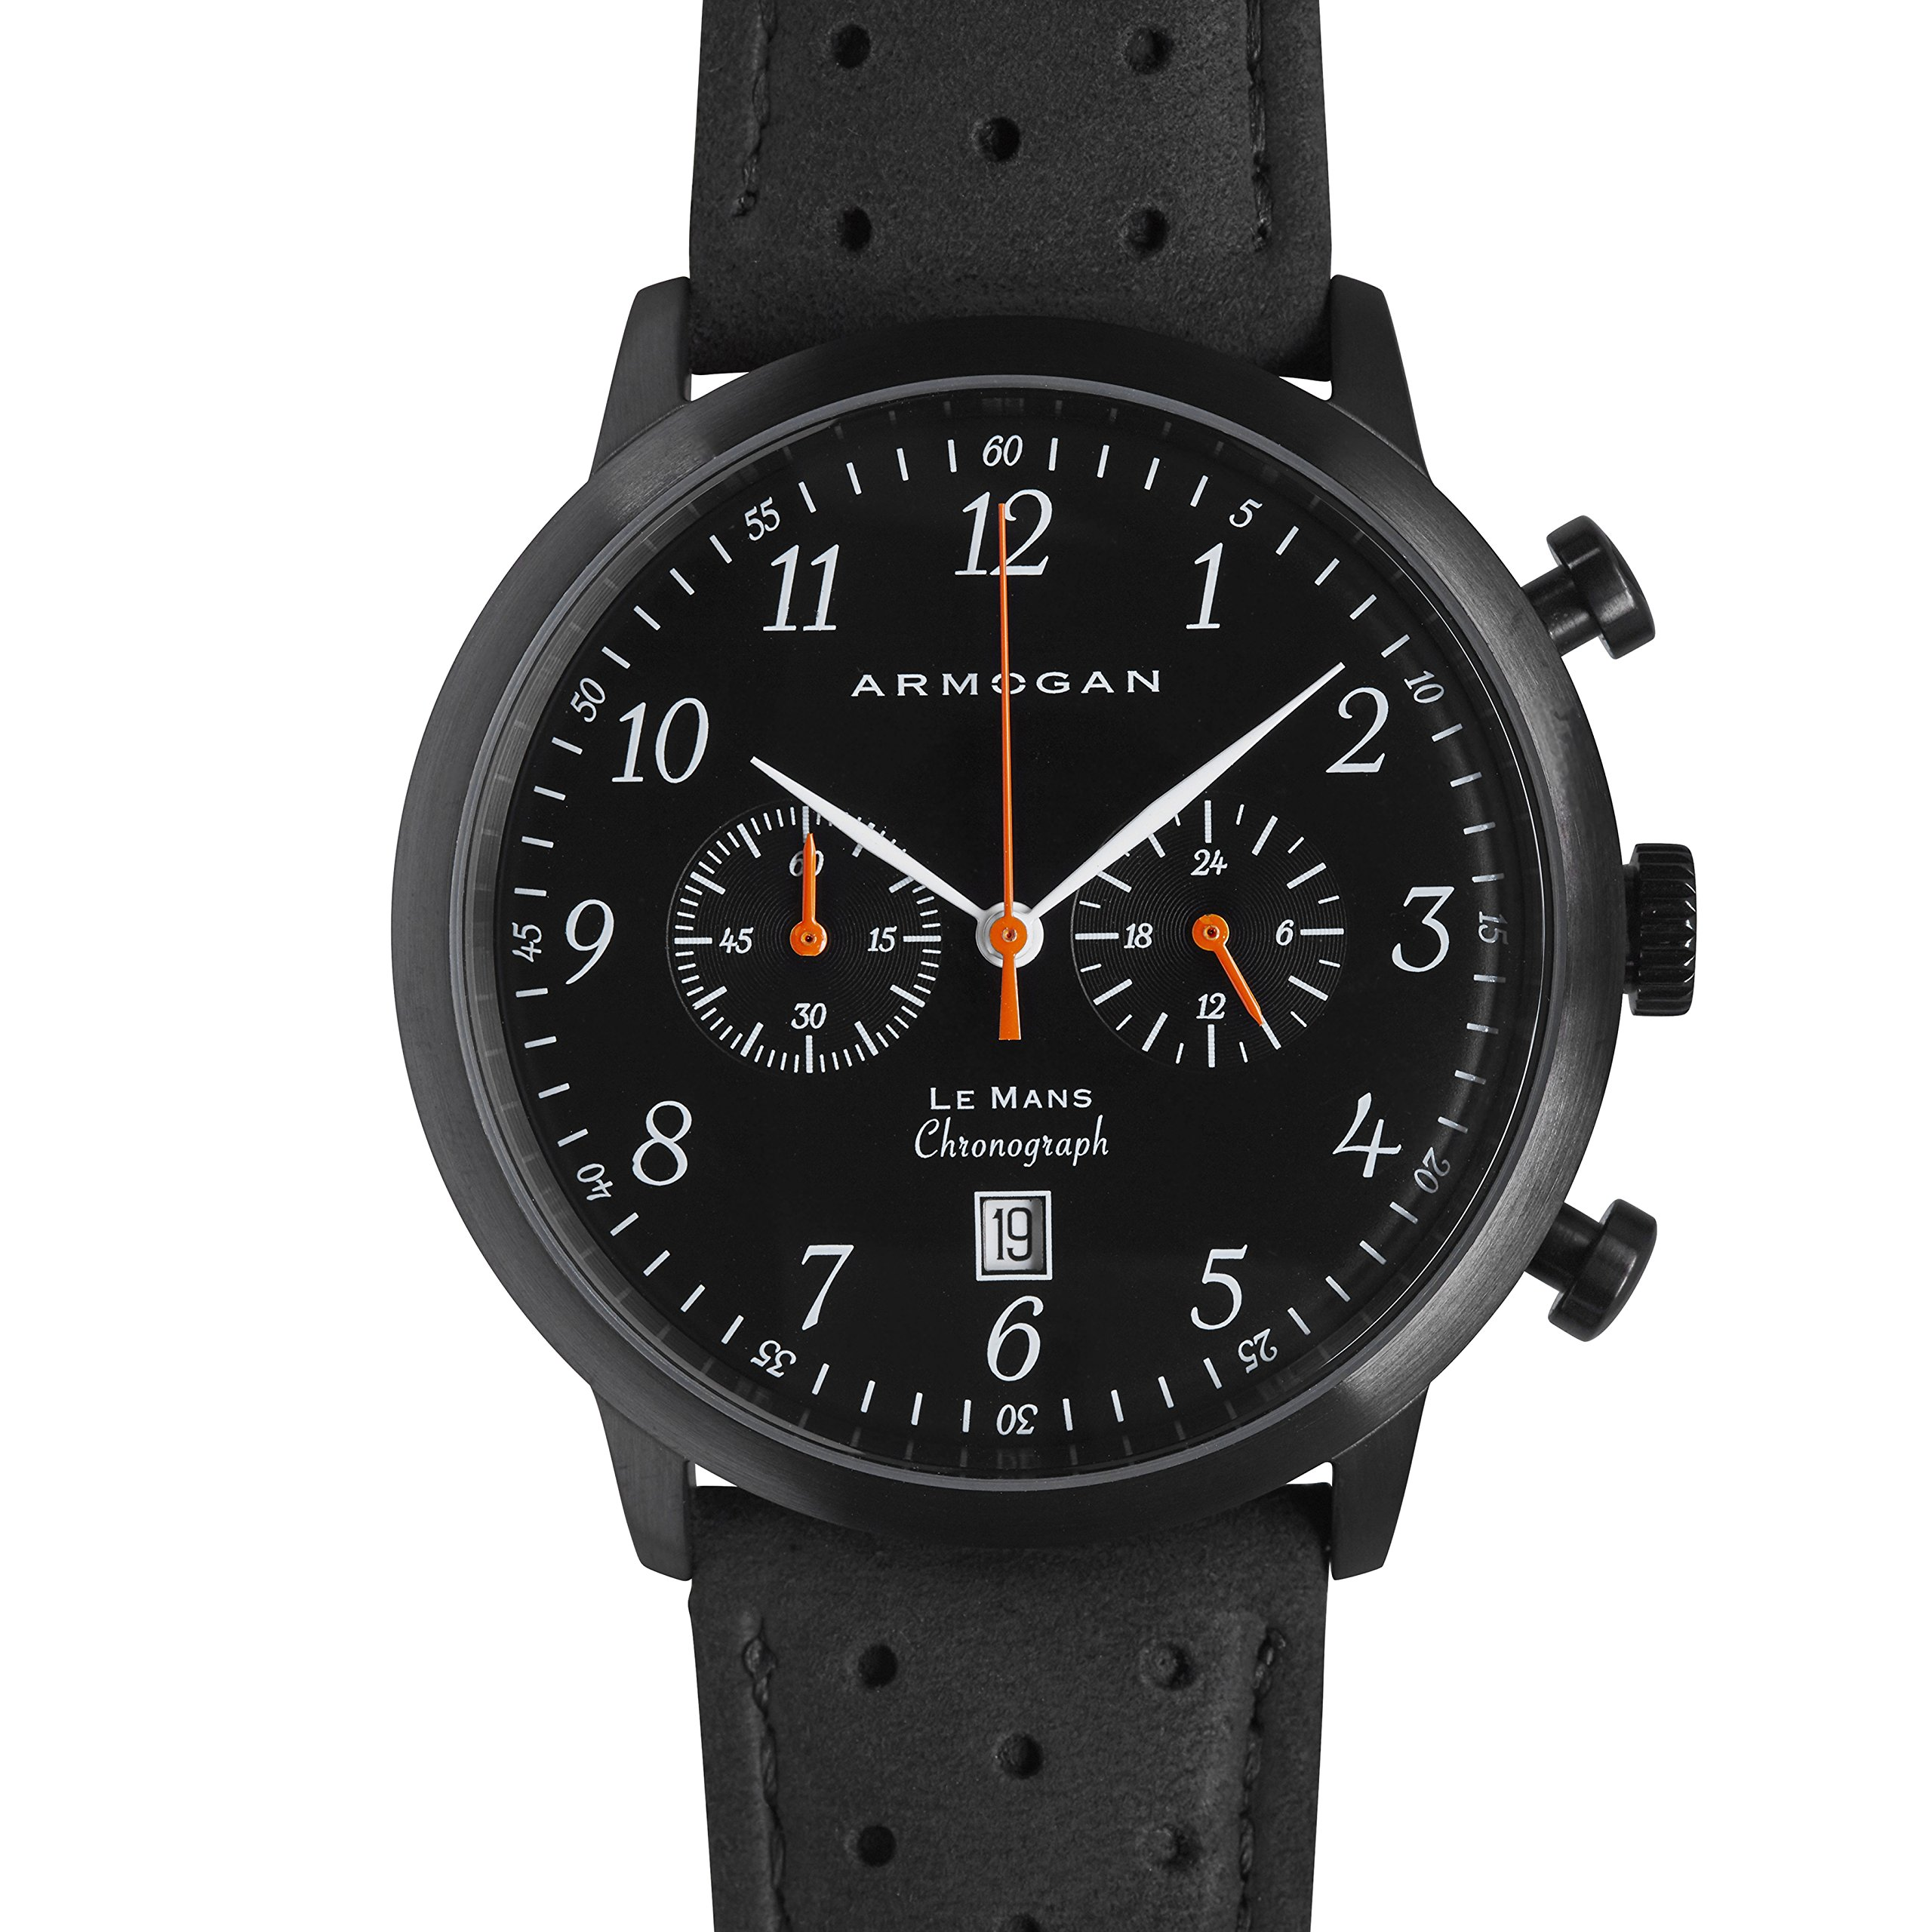 Armogan Le Mans - Midnight Black S23 - Men's Chronograph Watch - Perfored Suede Leather Strap by ARMOGAN